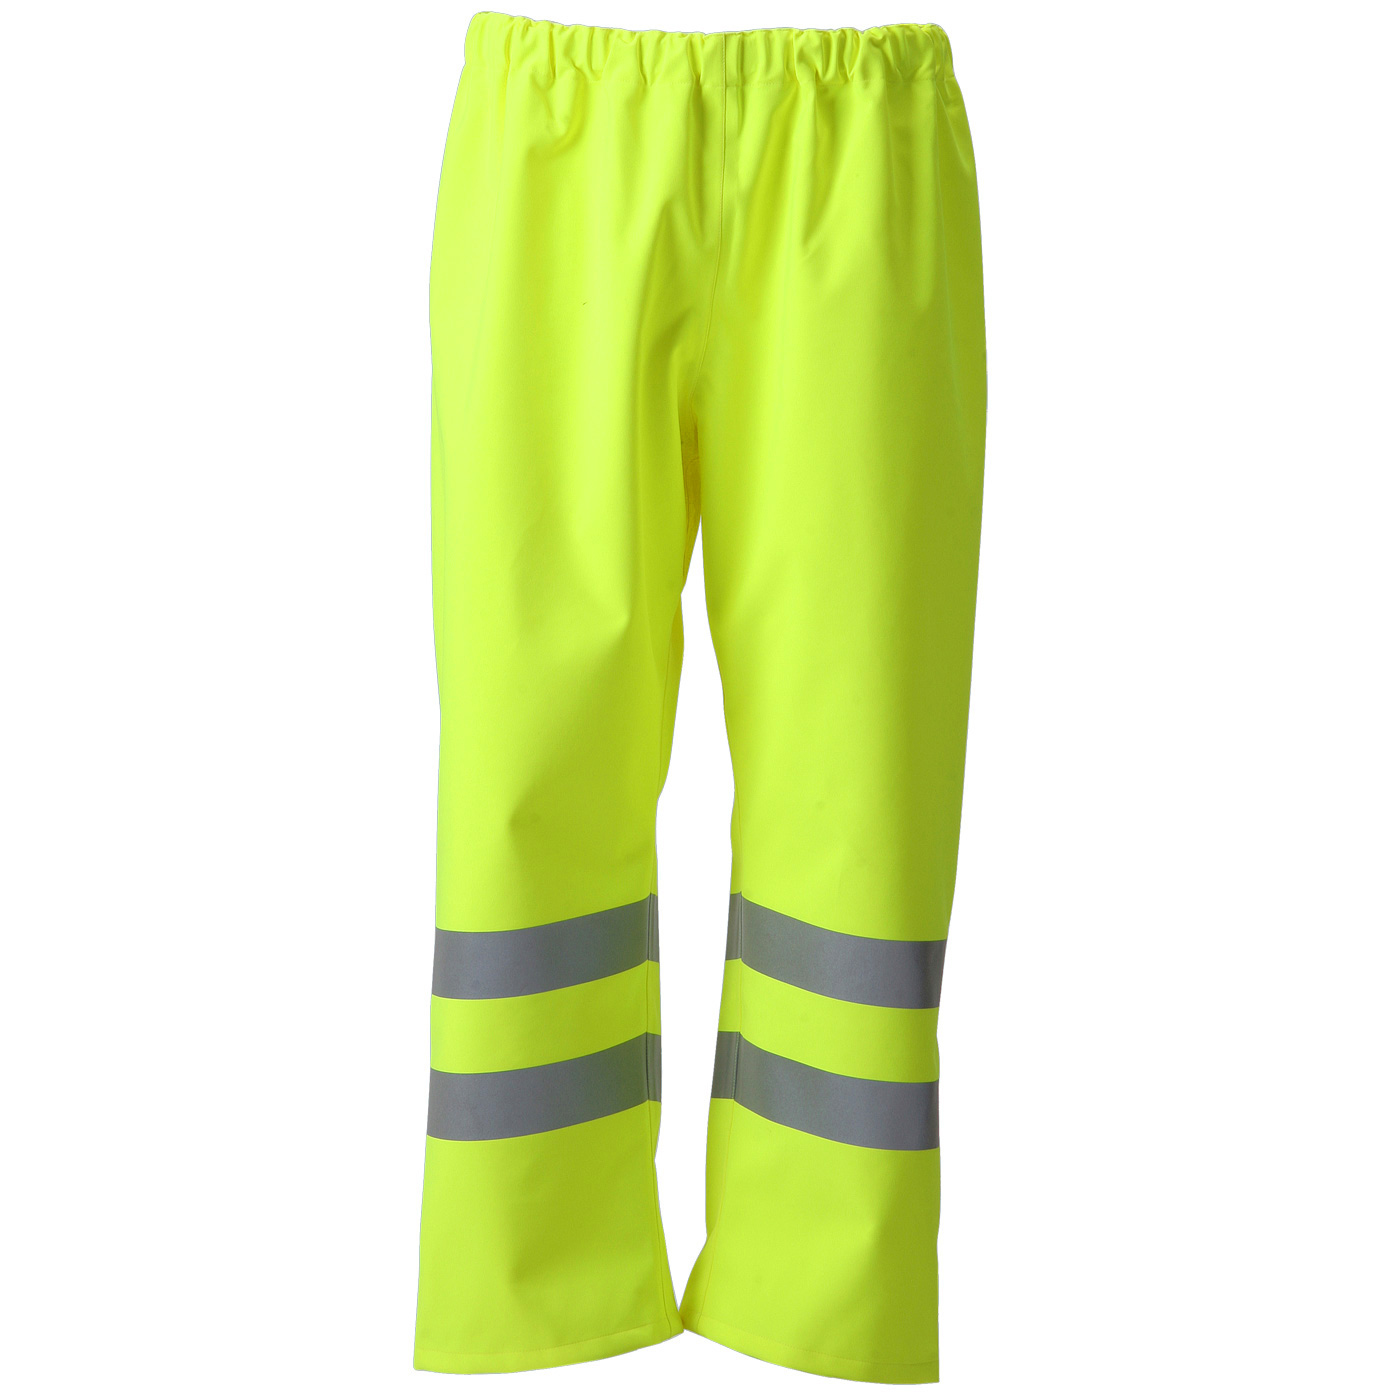 B-Seen Gore-Tex Over Trousers Foul Weather M Saturn Yellow Ref GTHV160SYM *Up to 3 Day Leadtime*